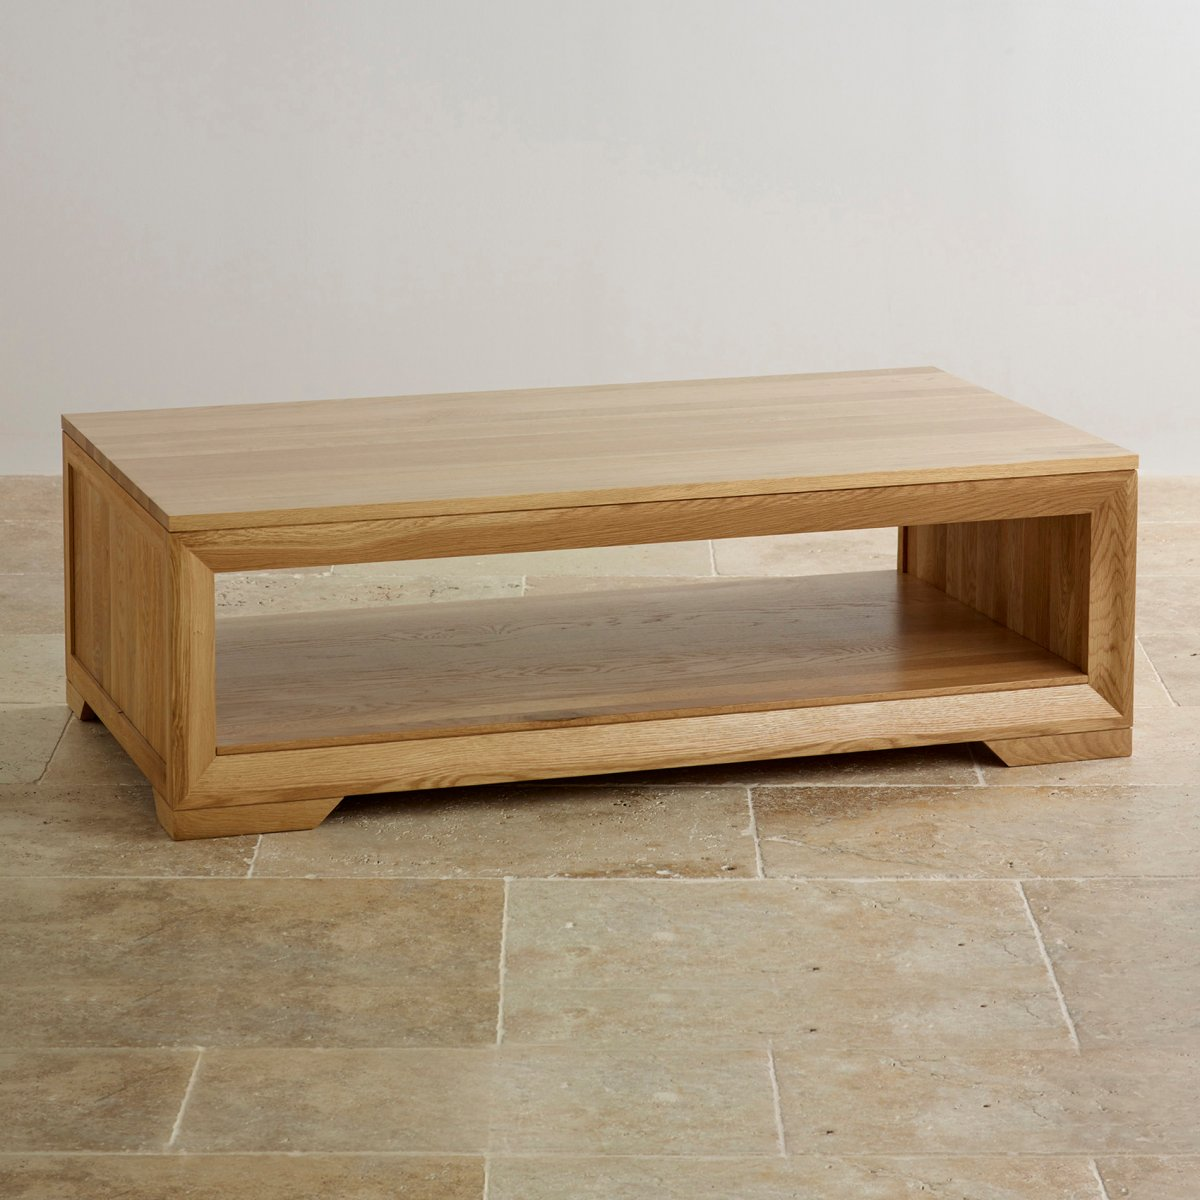 Bevel coffee table in solid oak oak furniture land bevel natural solid oak coffee table geotapseo Image collections